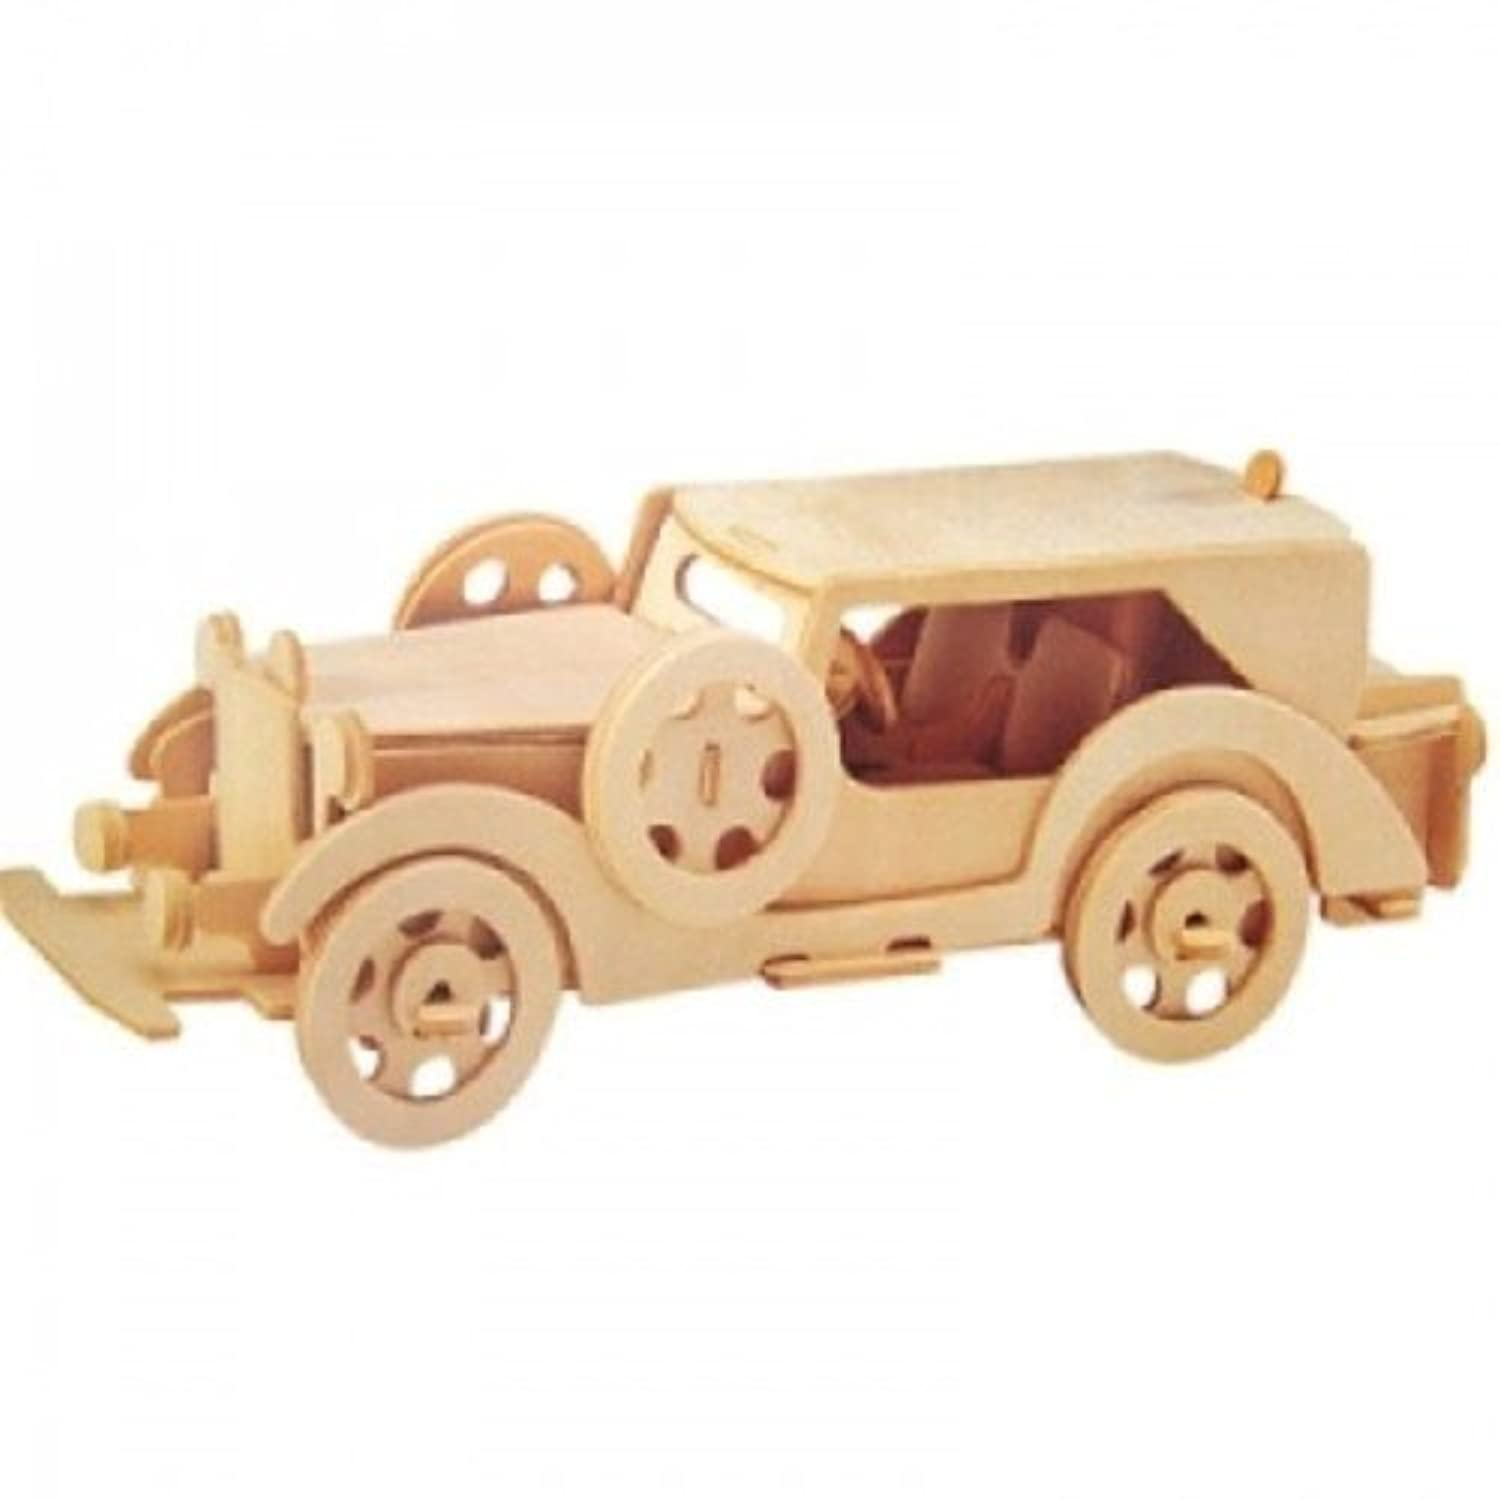 Wood Craft automobile - Ford v8